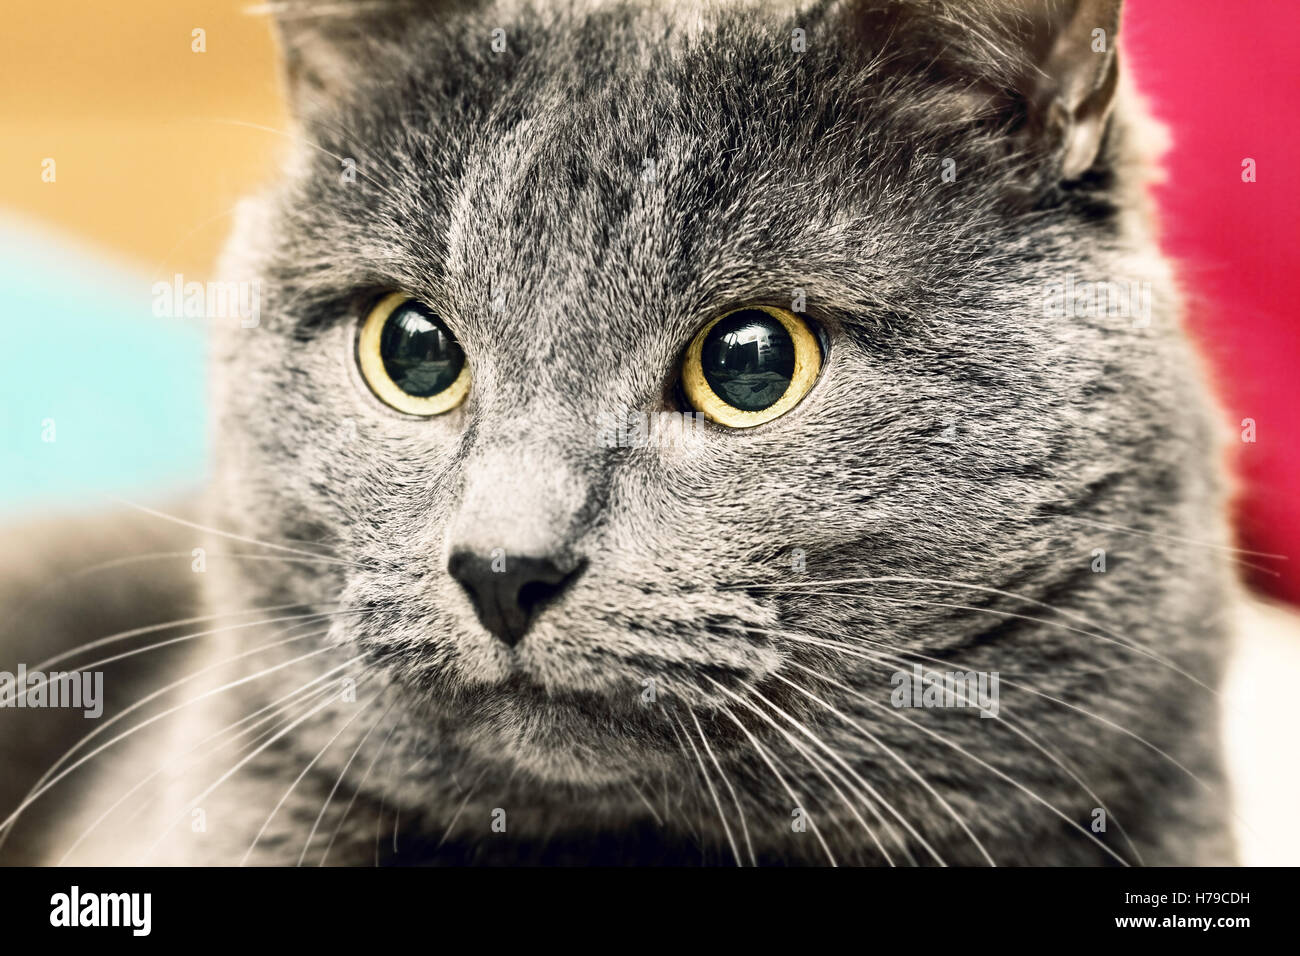 Closeup portrait of adult angry gray cat - Stock Image